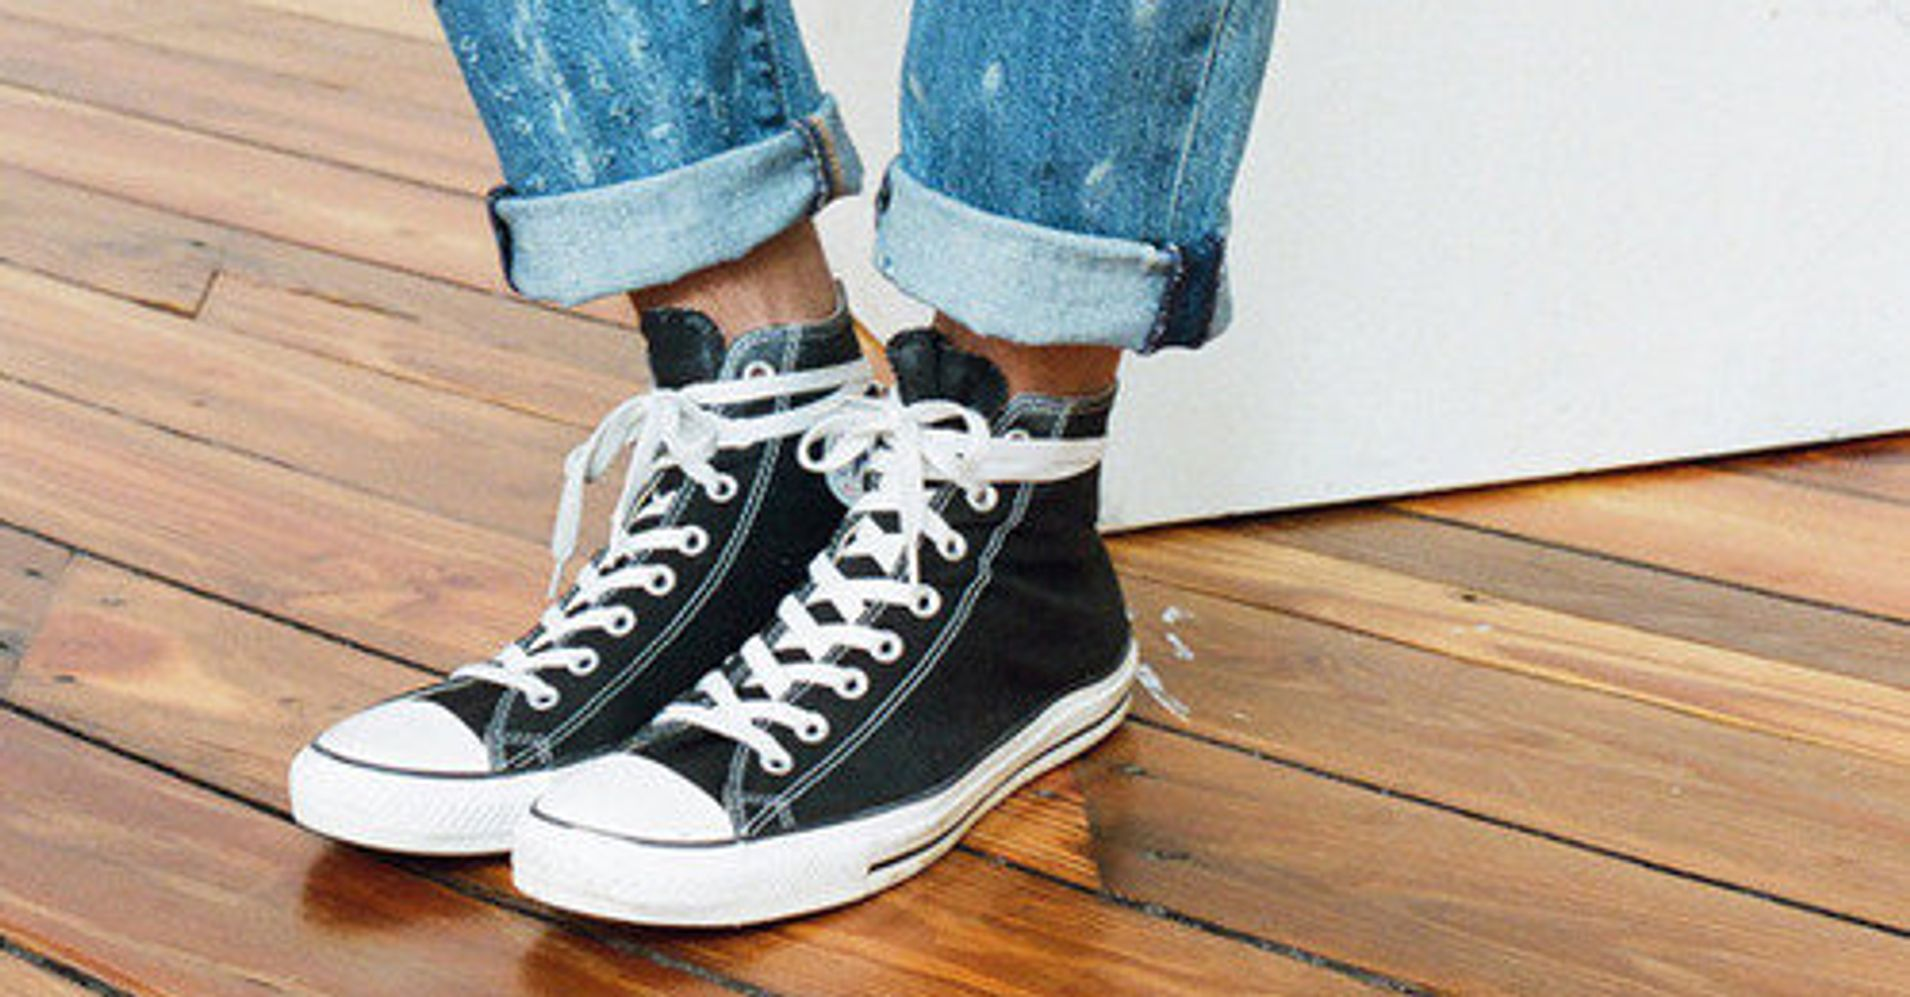 51e3de2e3f19 Converse Chuck Taylors Get Their First-Ever Redesign In 98 Years ...